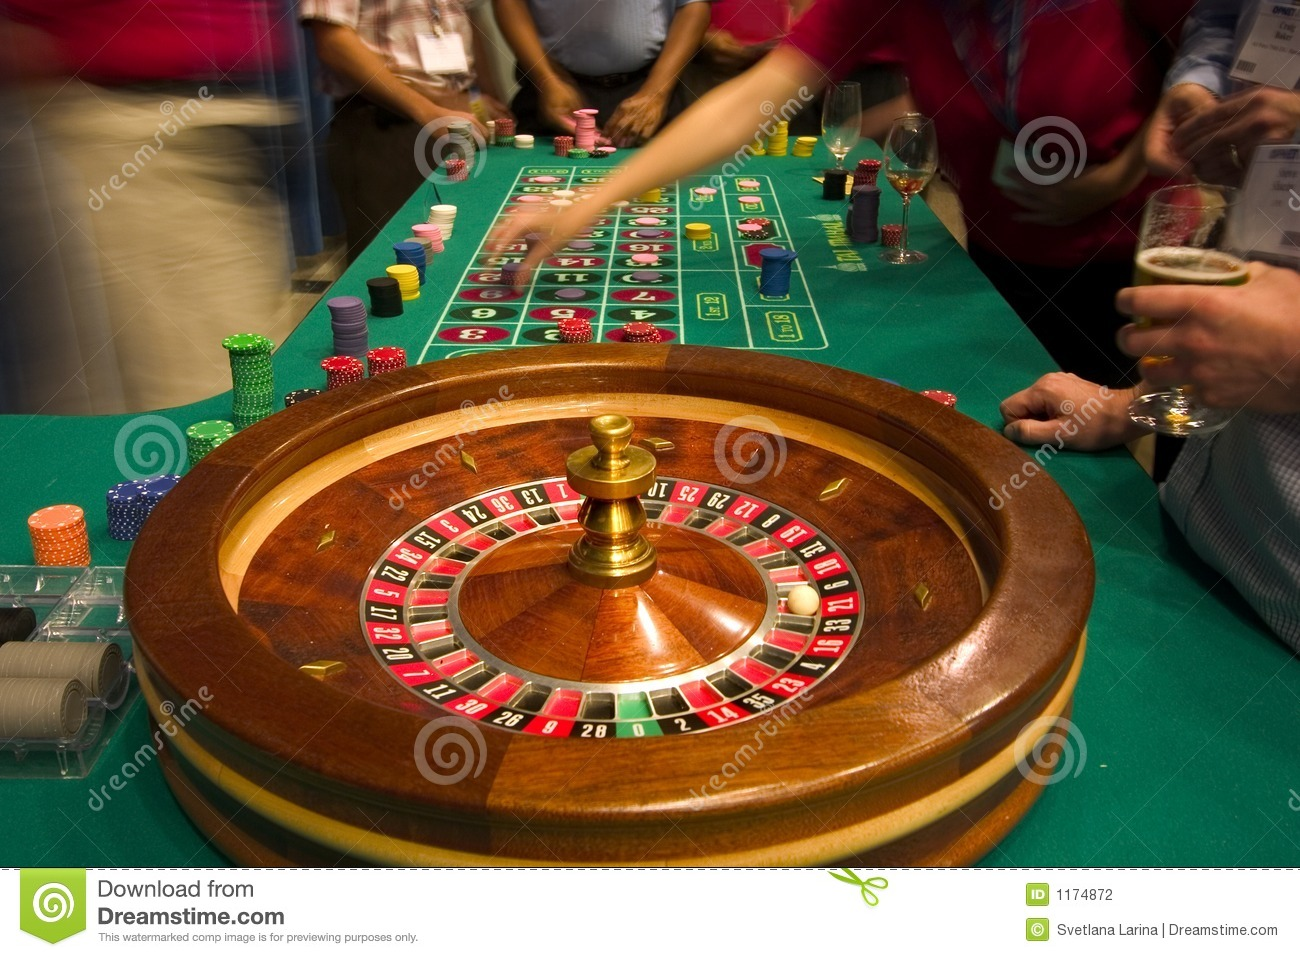 roulette table stock photo image of gamble jackpot hands 1174872. Black Bedroom Furniture Sets. Home Design Ideas